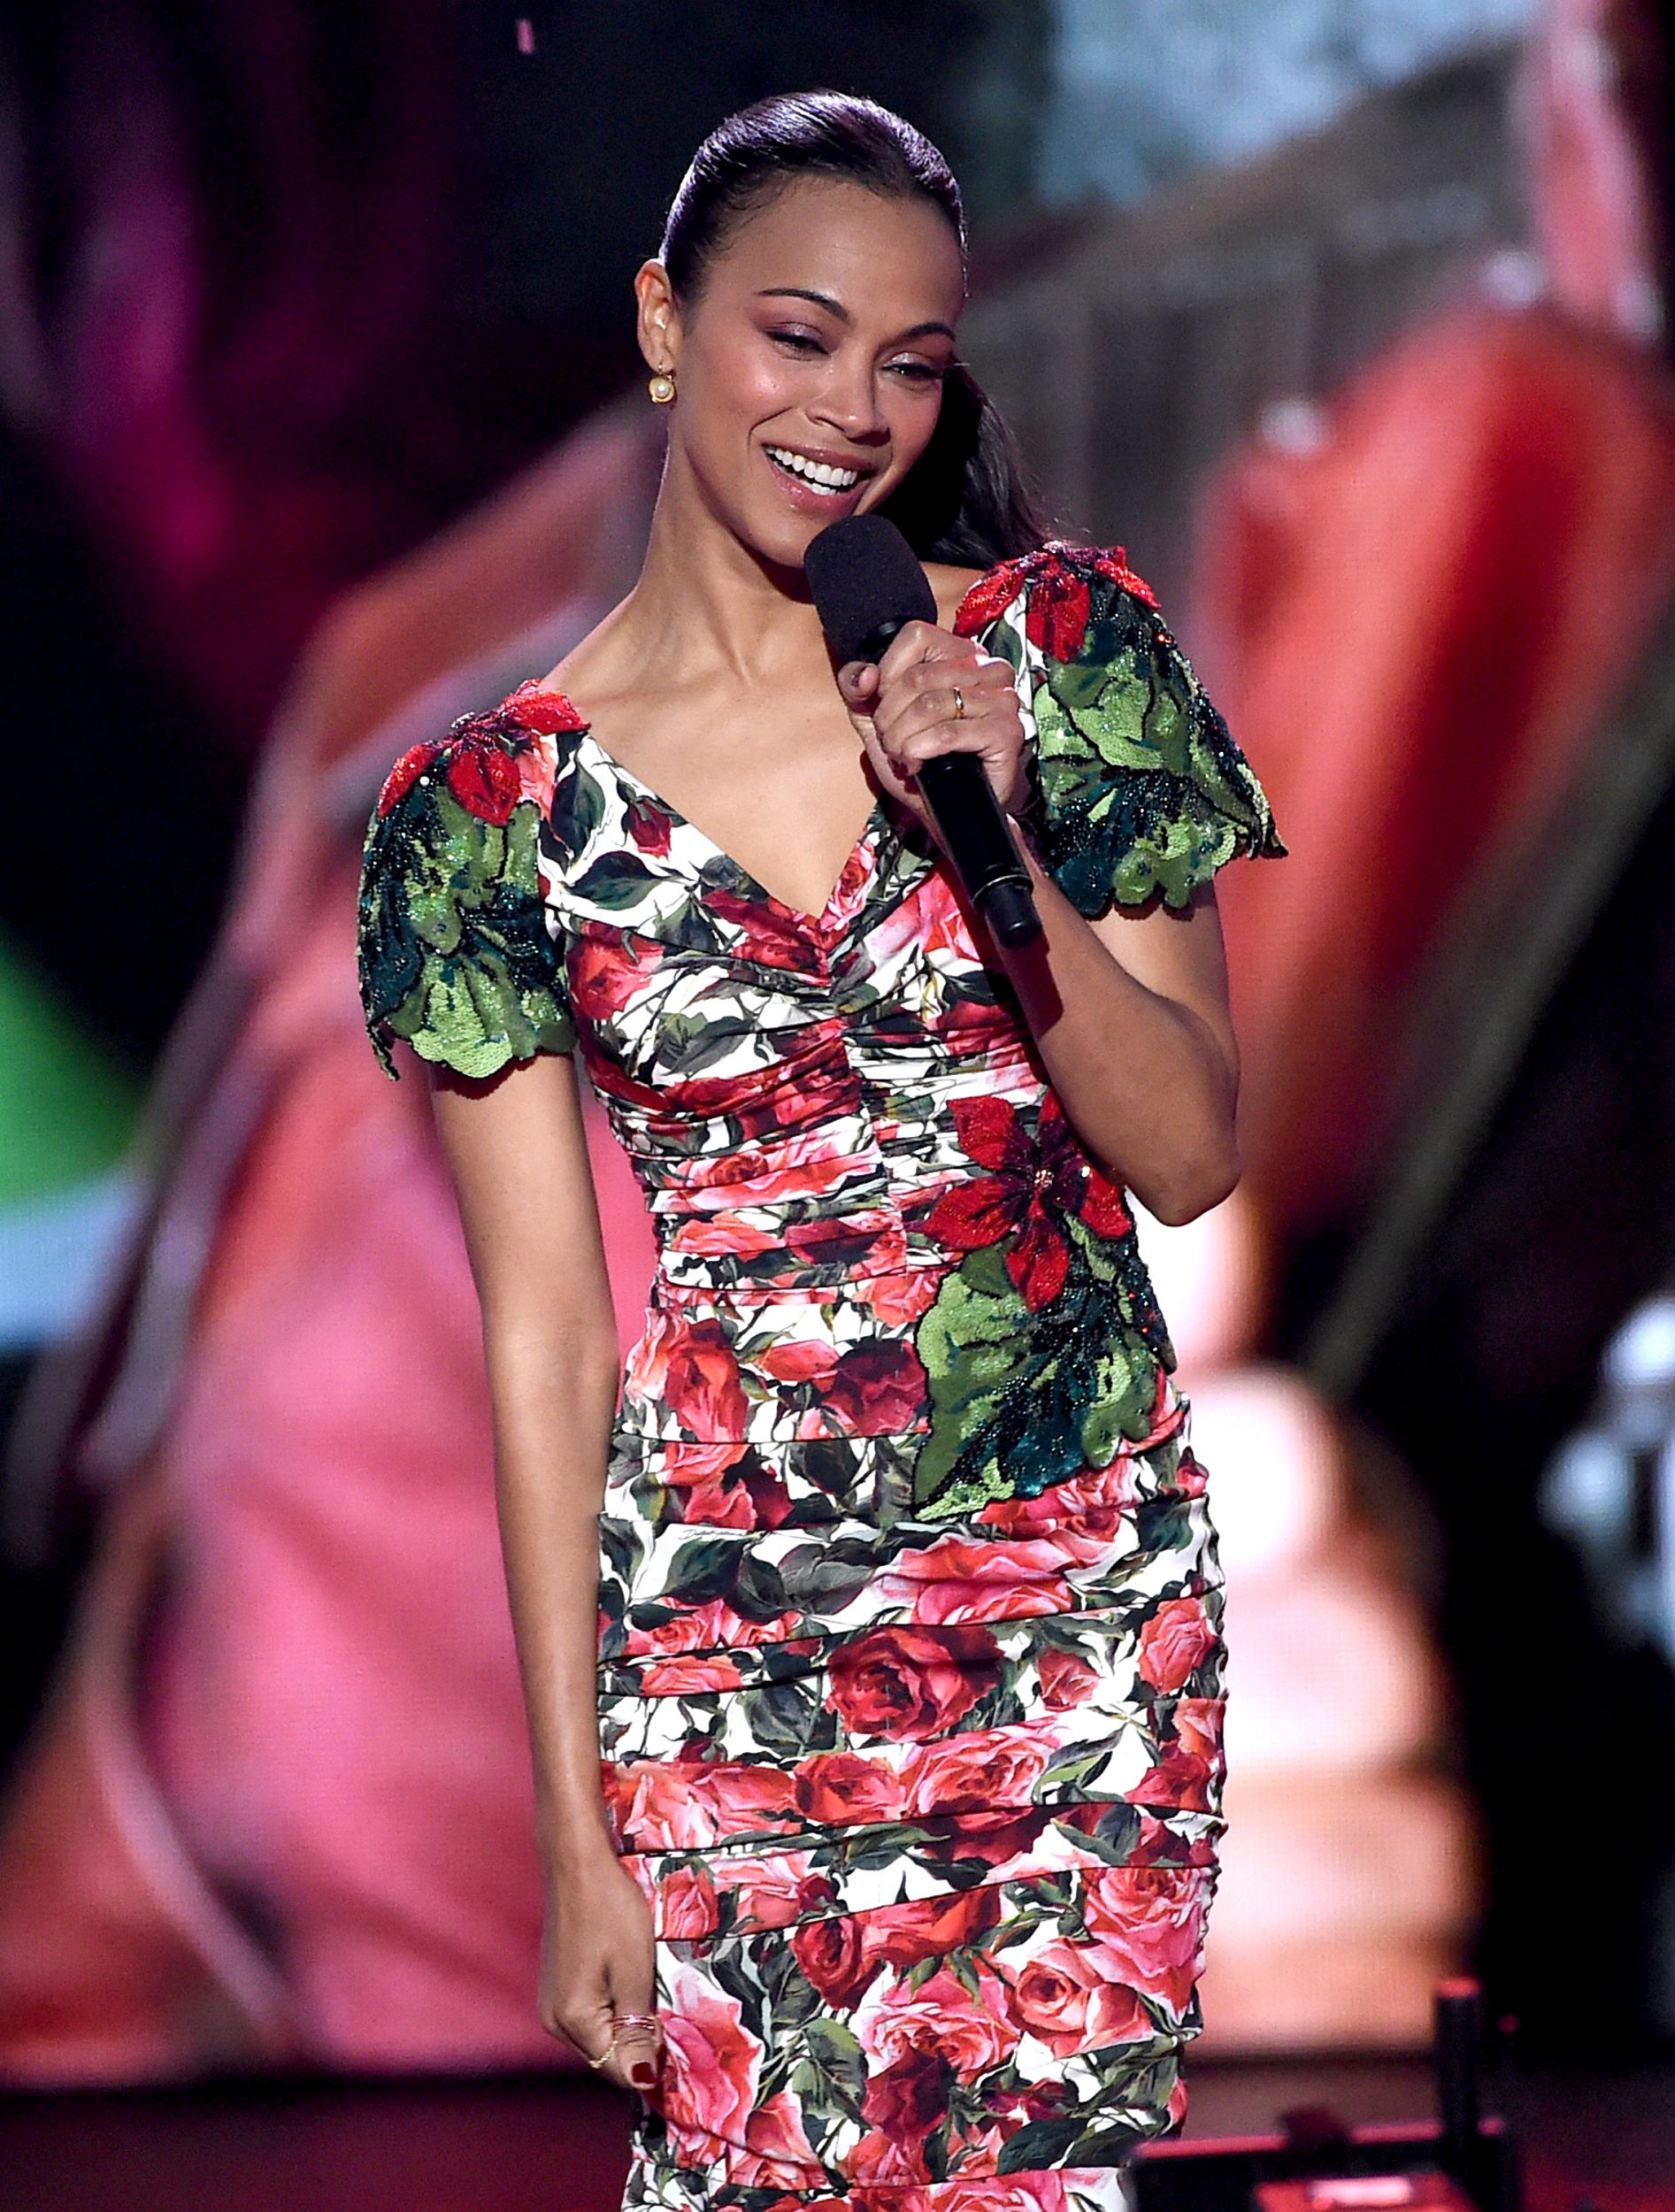 LOS ANGELES, CA - MARCH 11:  Actor Zoe Saldana appears onstage at Nickelodeon's 2017 Kids' Choice Awards at USC Galen Center on March 11, 2017 in Los Angeles, California.  (Photo by Kevin Winter/Getty Images - Issued to Media by Nickelodeon)